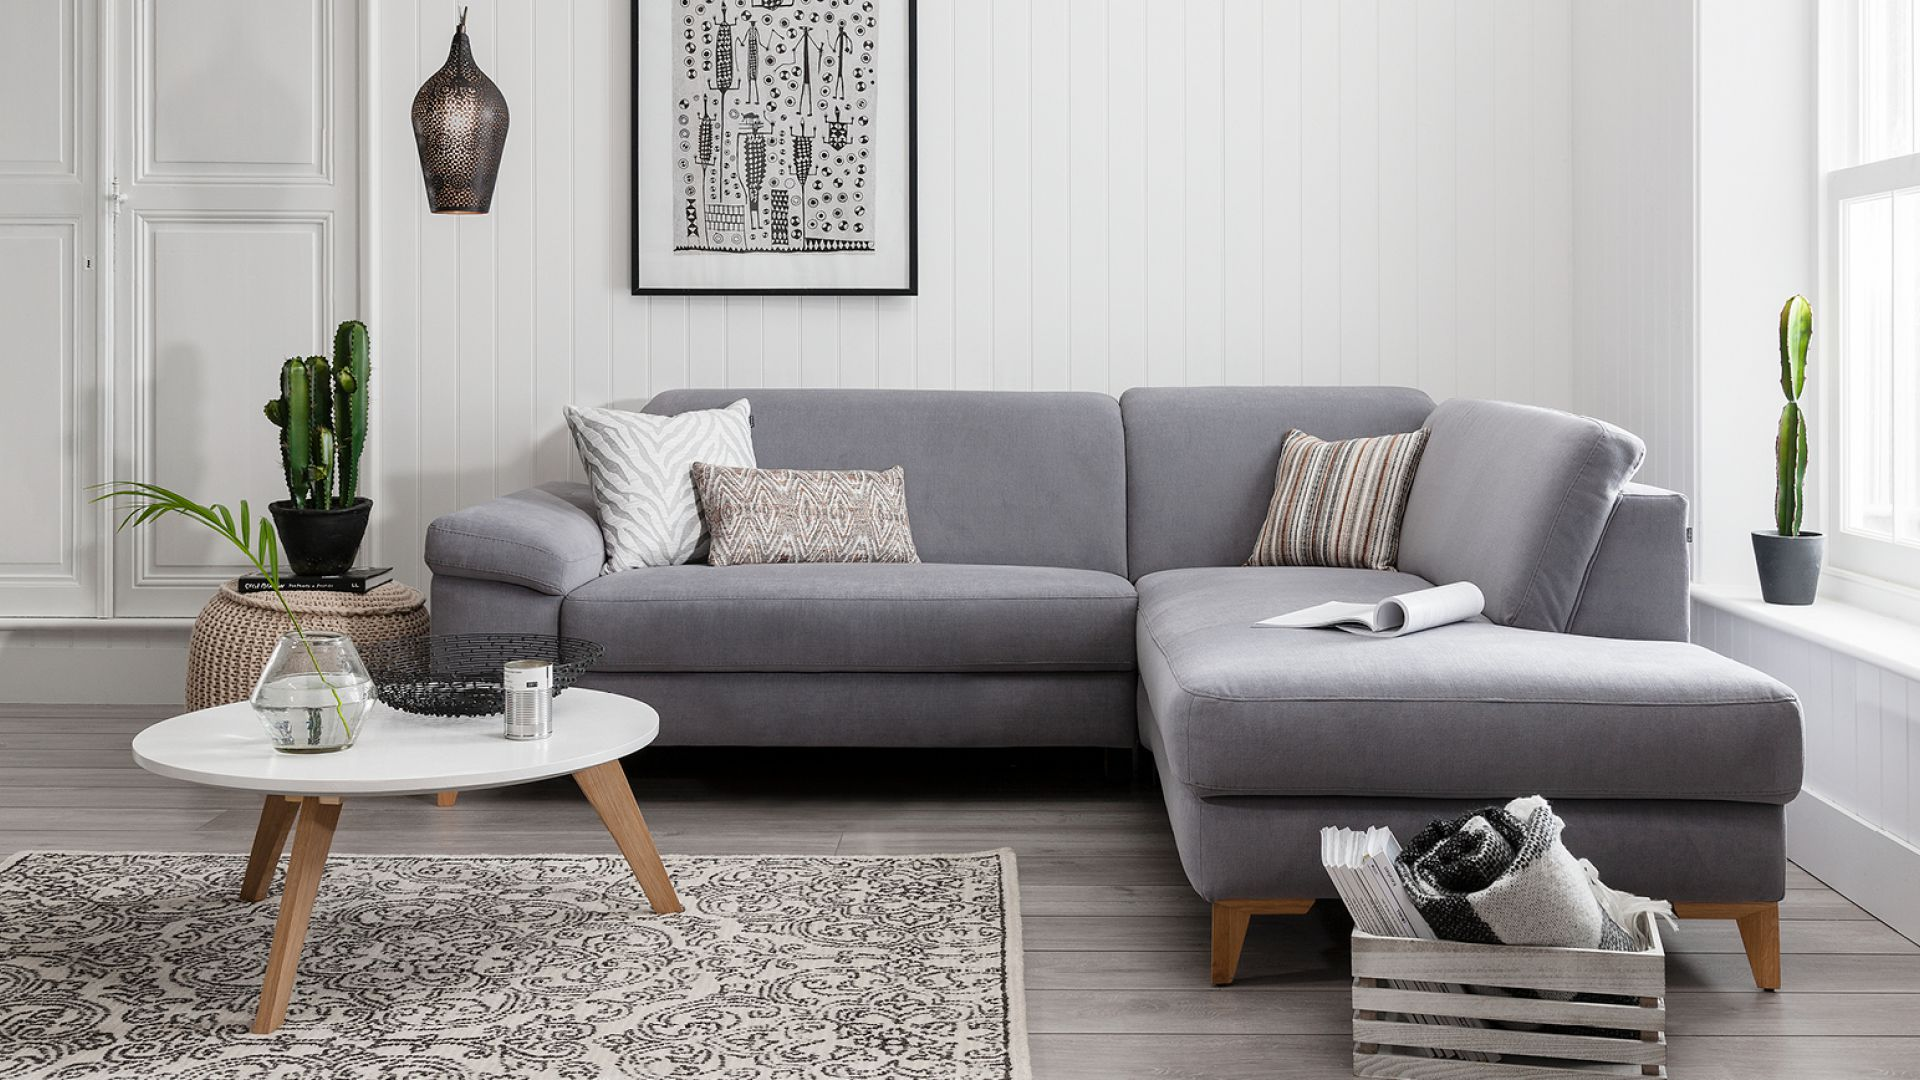 Modular Corner Sofas UK - Contemporary Modular Corner Sofa